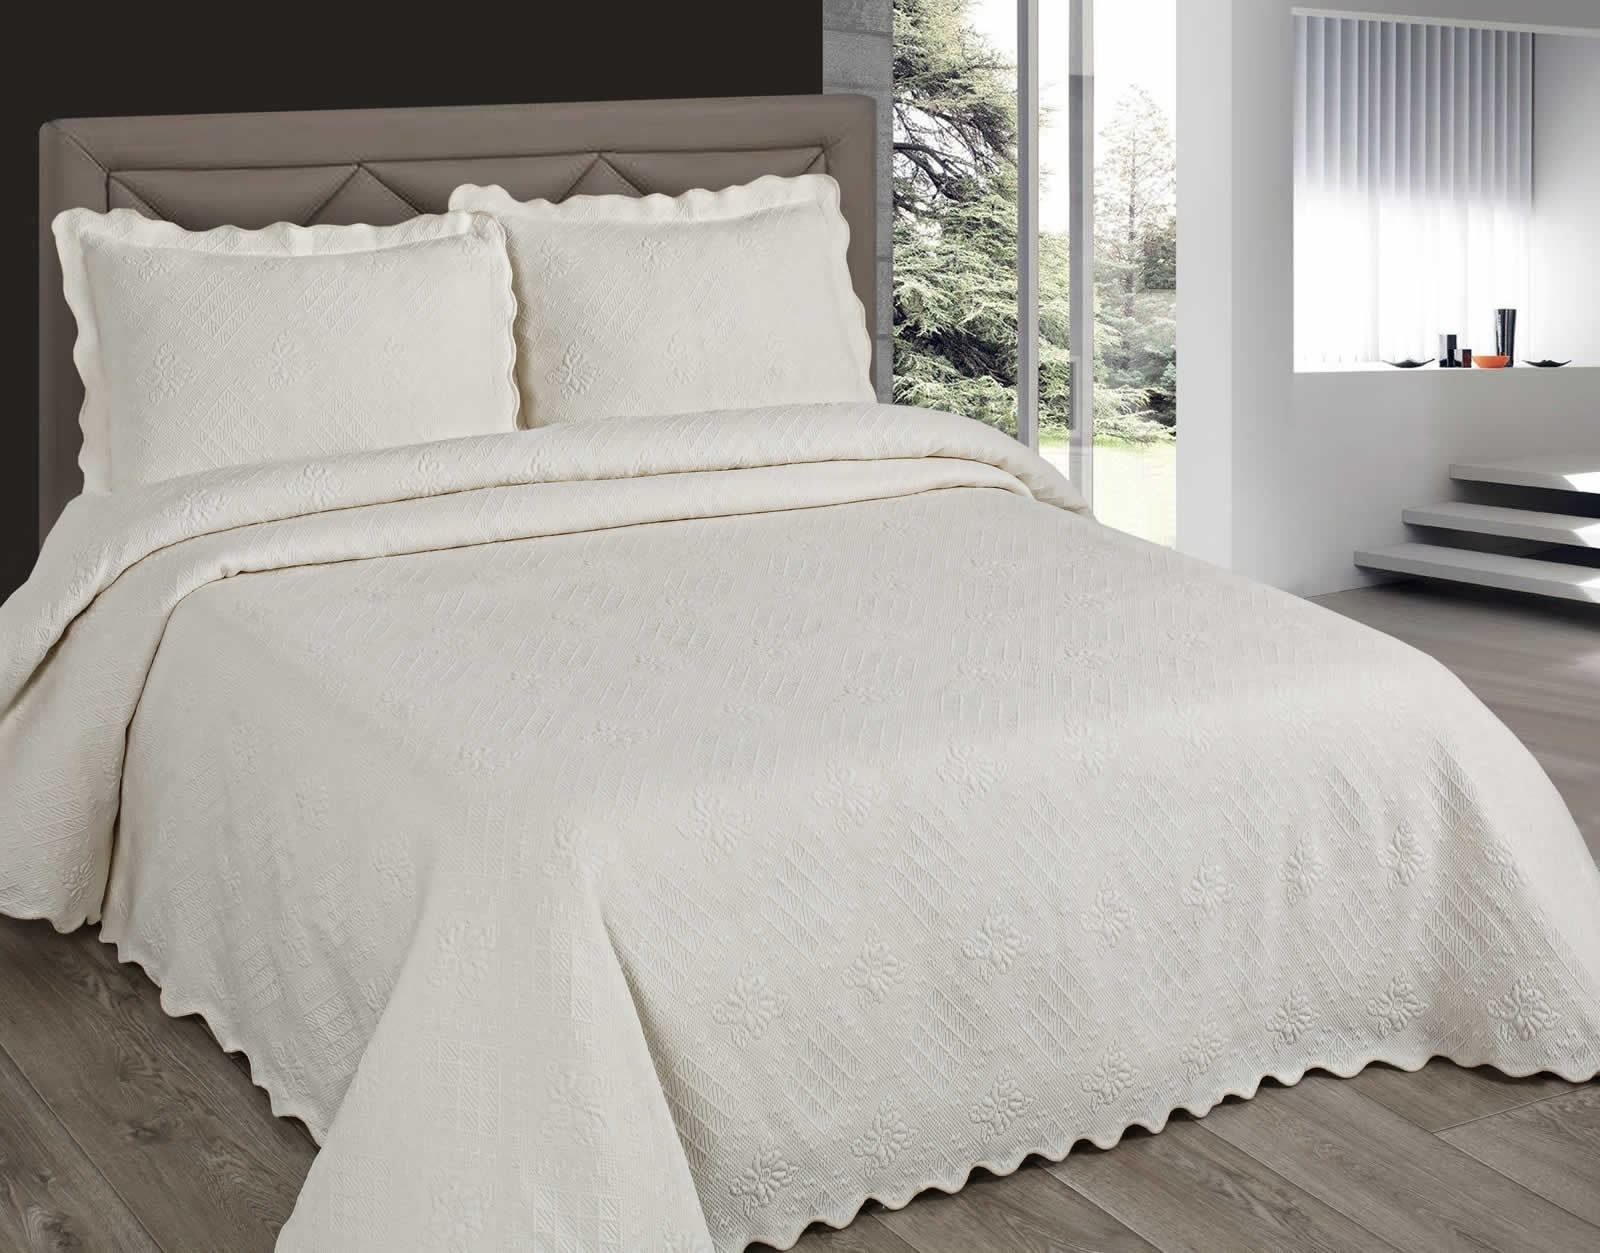 Matrimonio Bed Cover : Luxury embroidered bedspreads bed cover throws all sizes cream